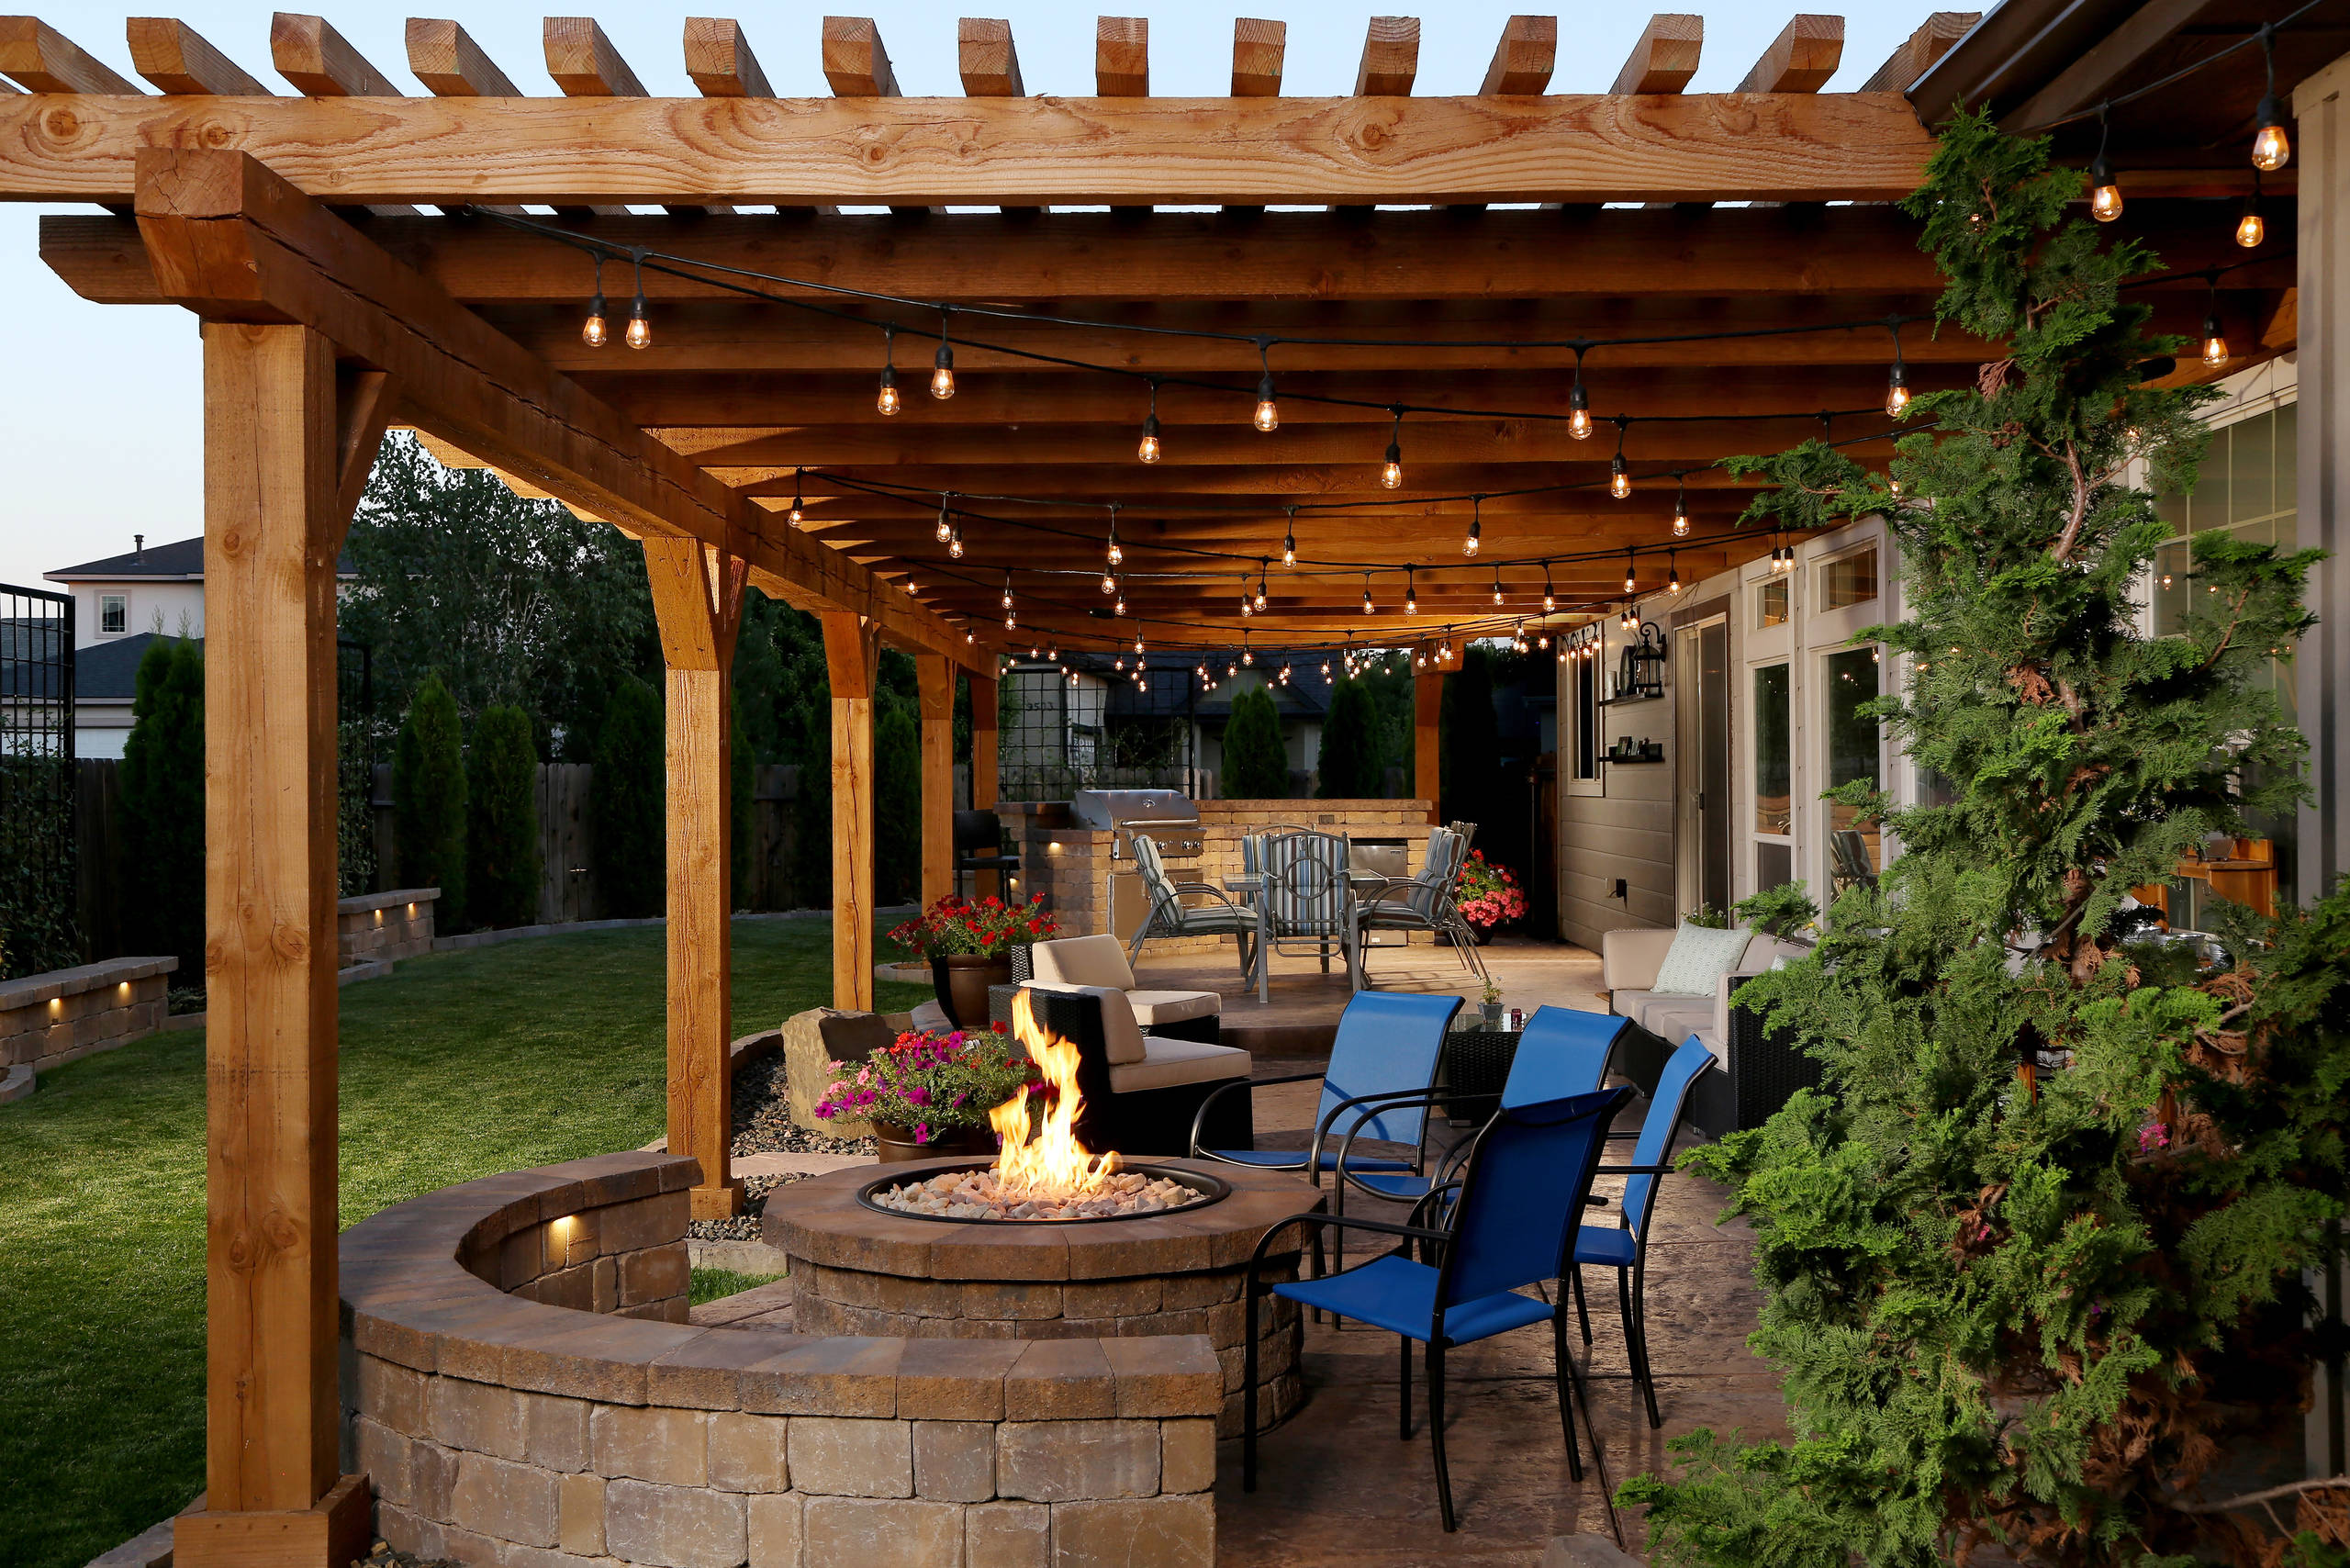 What is a pergola Rustic Patio backyard wood pergola outdoor firepit